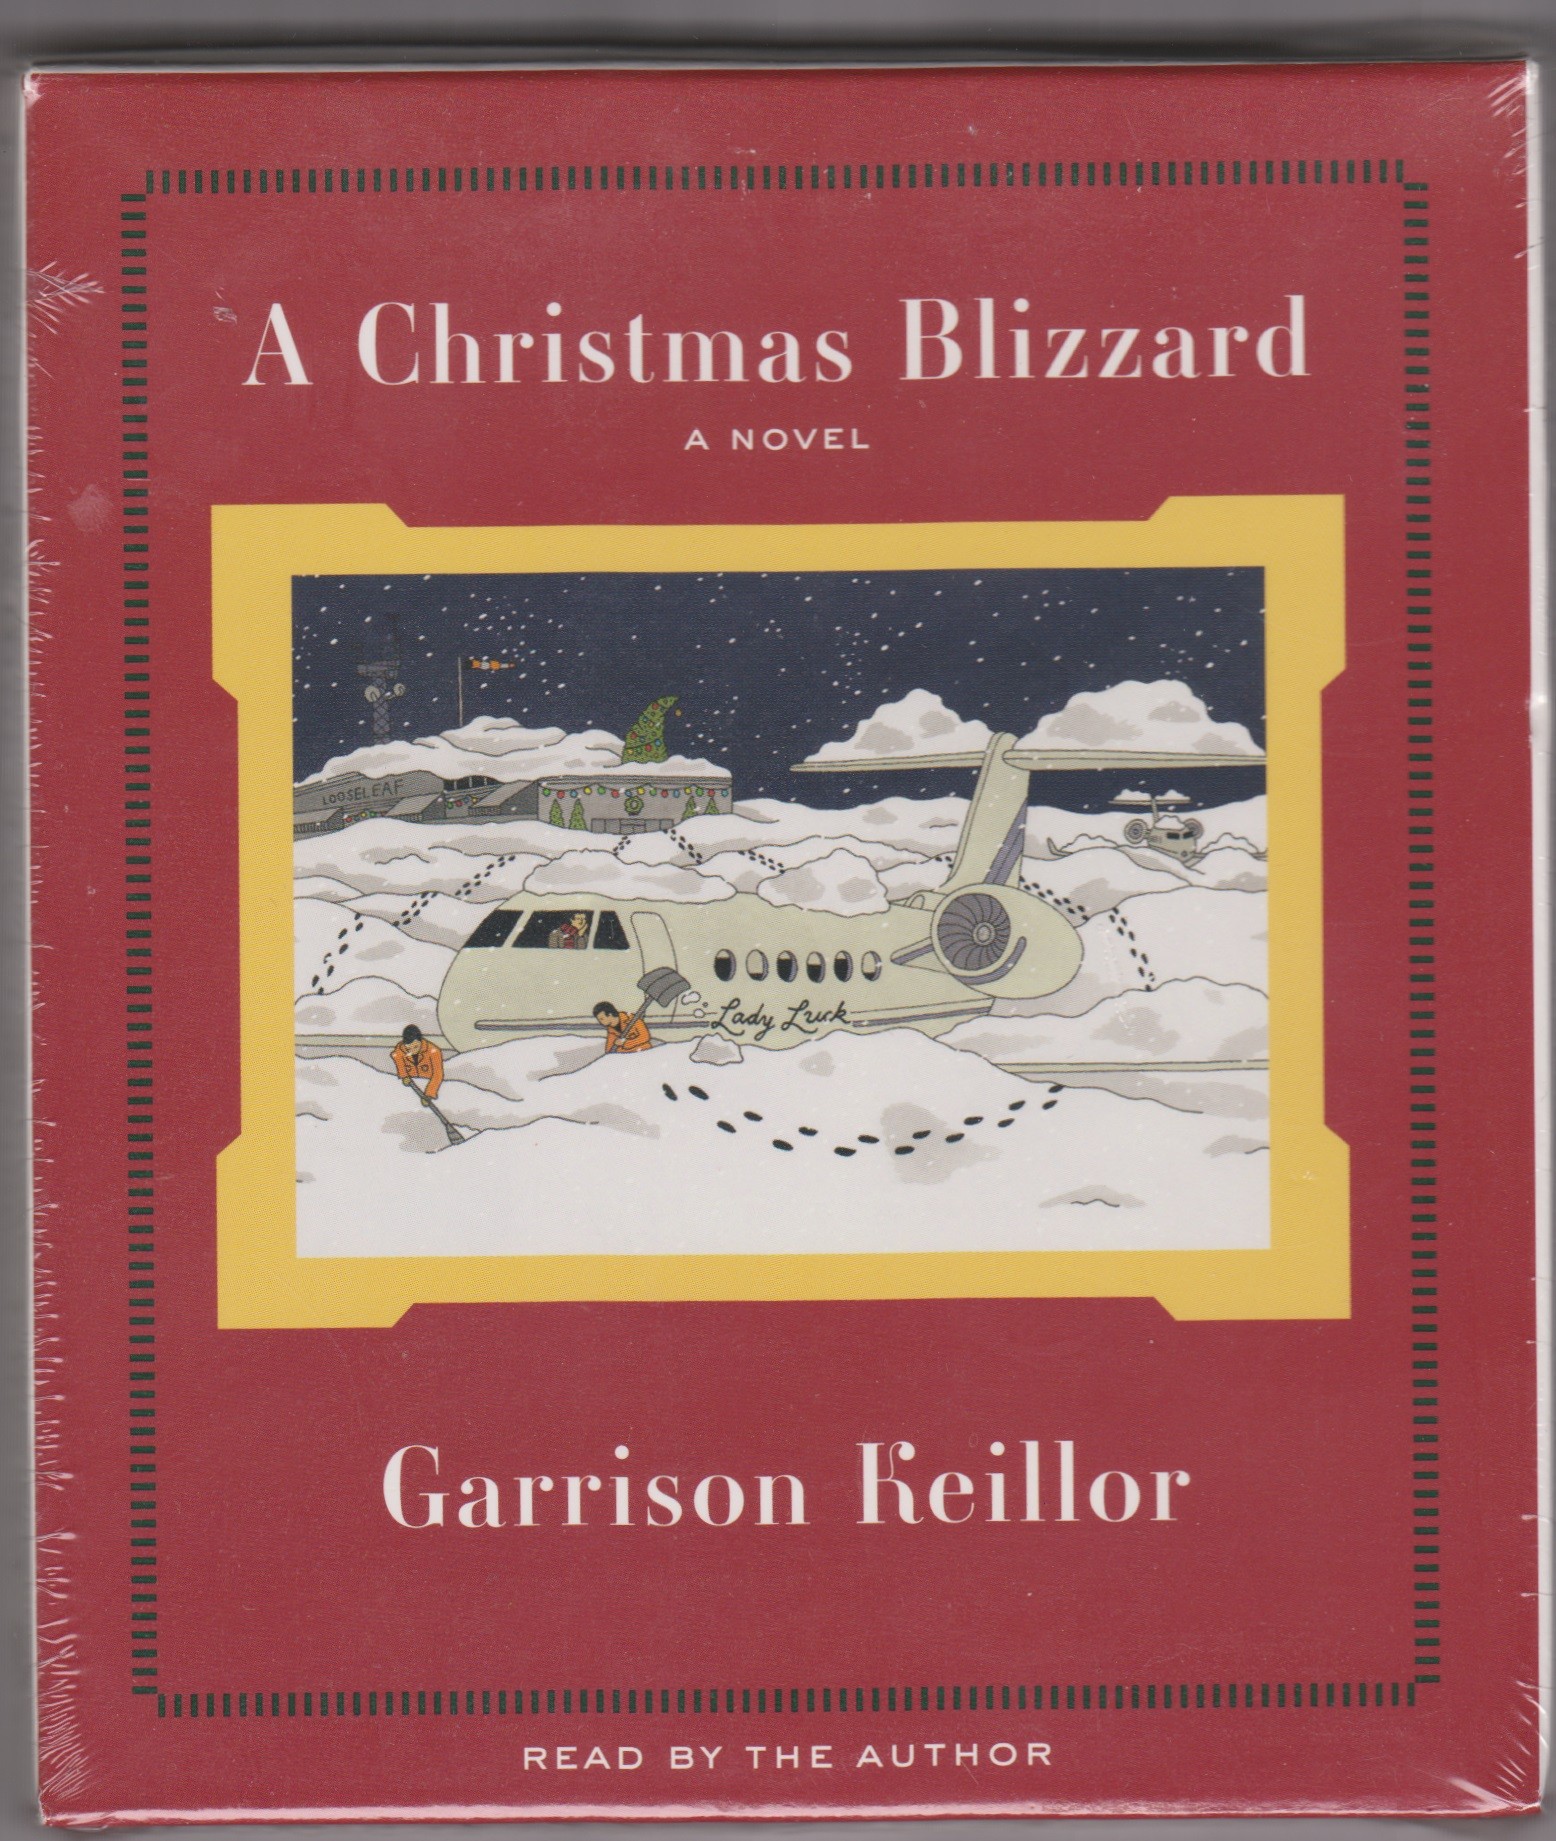 Image for A Christmas Blizzard - A Novel (Audio Book)